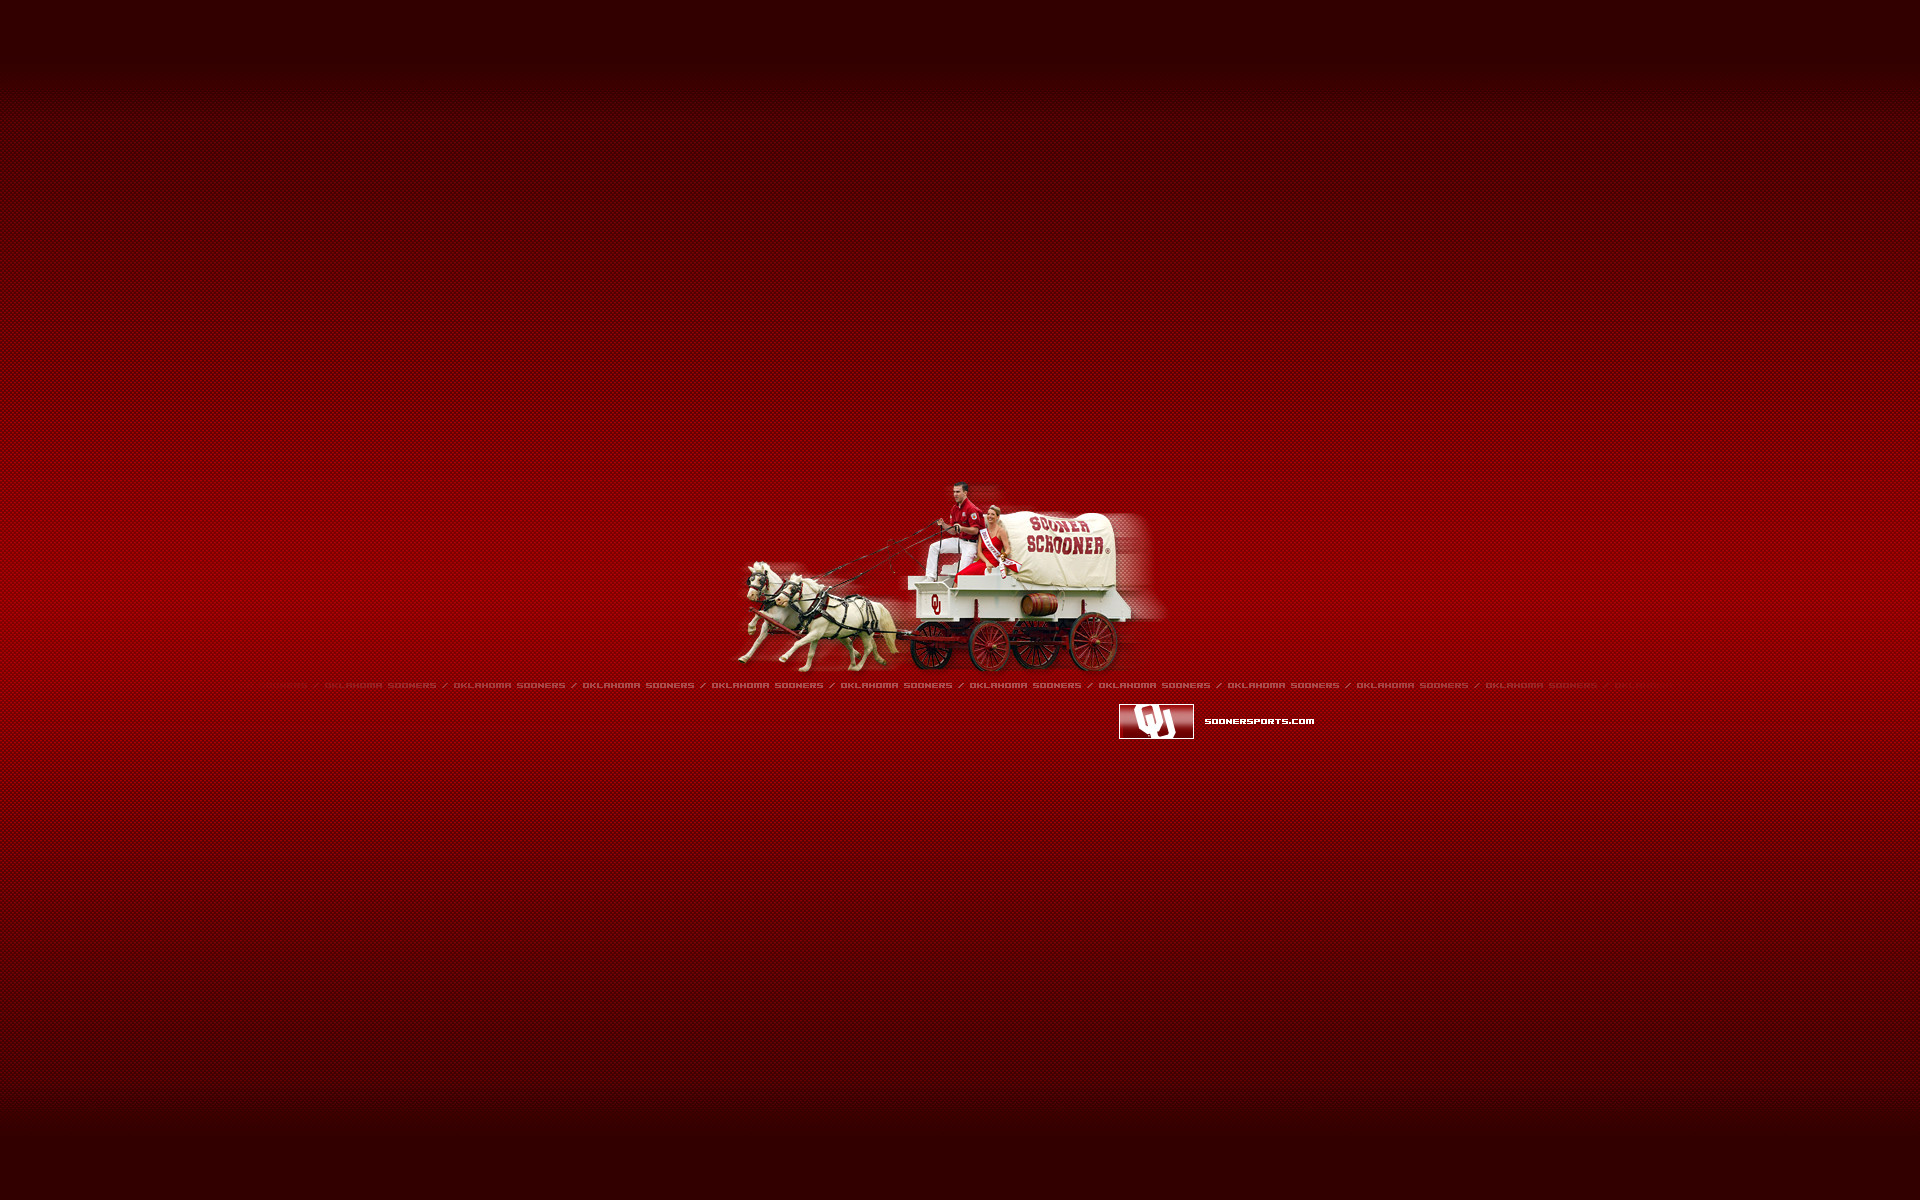 Oklahoma Sooners Football Wallpaper Collection | Sports Geekery